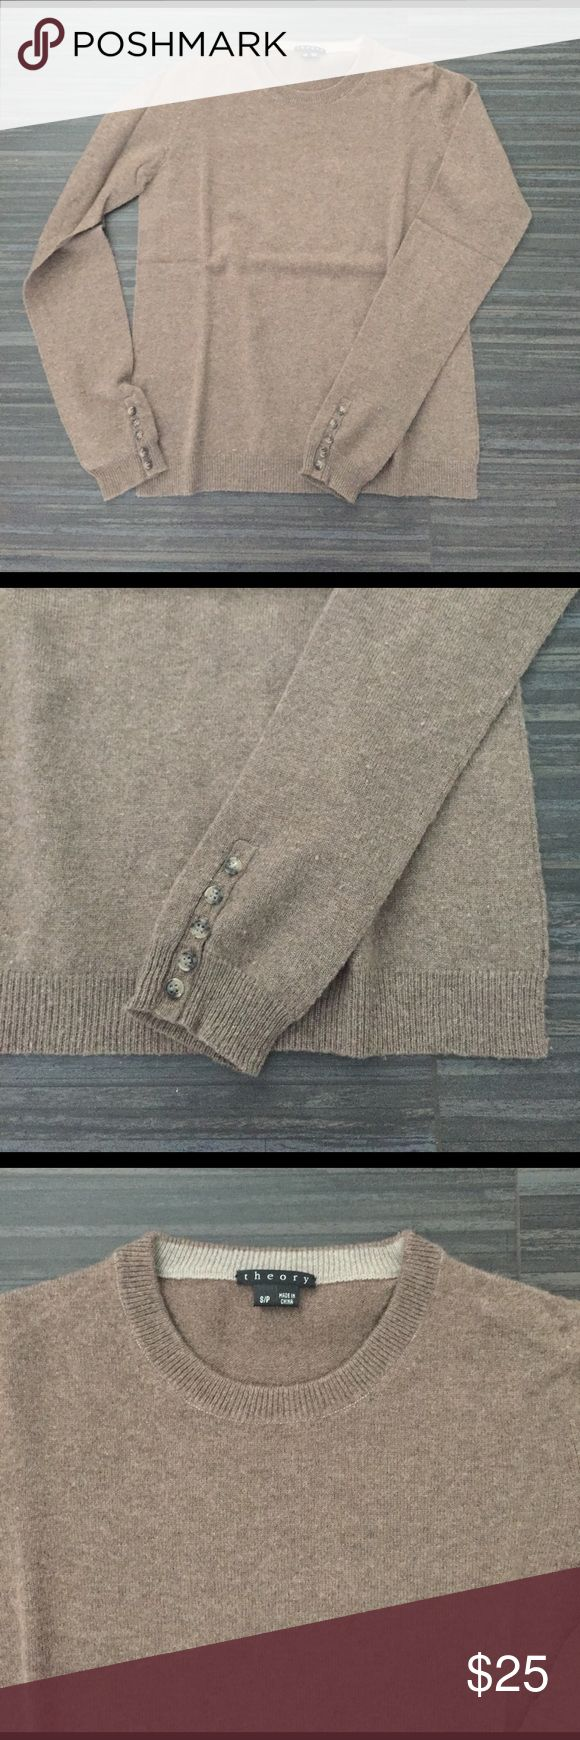 Theory Women's Cashmere Sweater Crew neck, long sleeves w/ button detail. Fitted. Heathered brown soft Cashmere. No pilling, like new! Theory Sweaters Crew & Scoop Necks